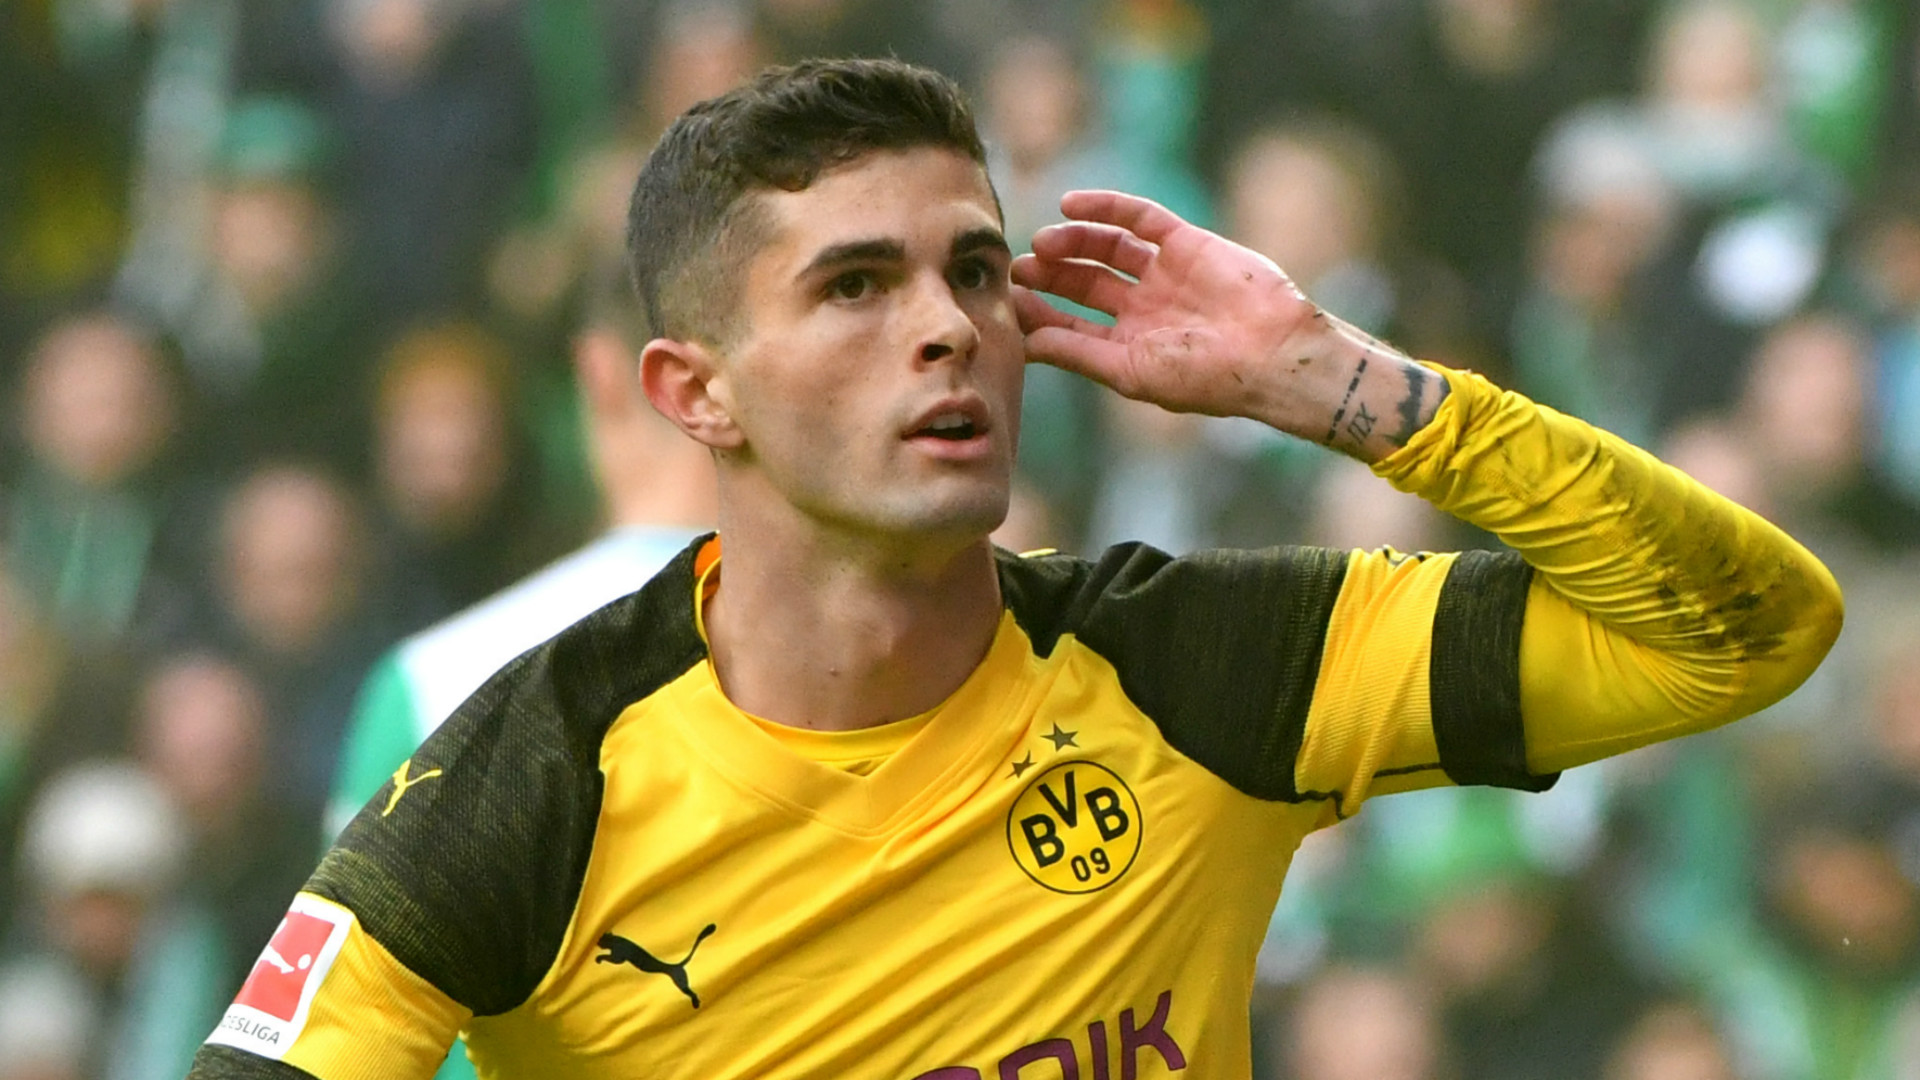 Pulisic hopes for the chance to play alongside Hazard